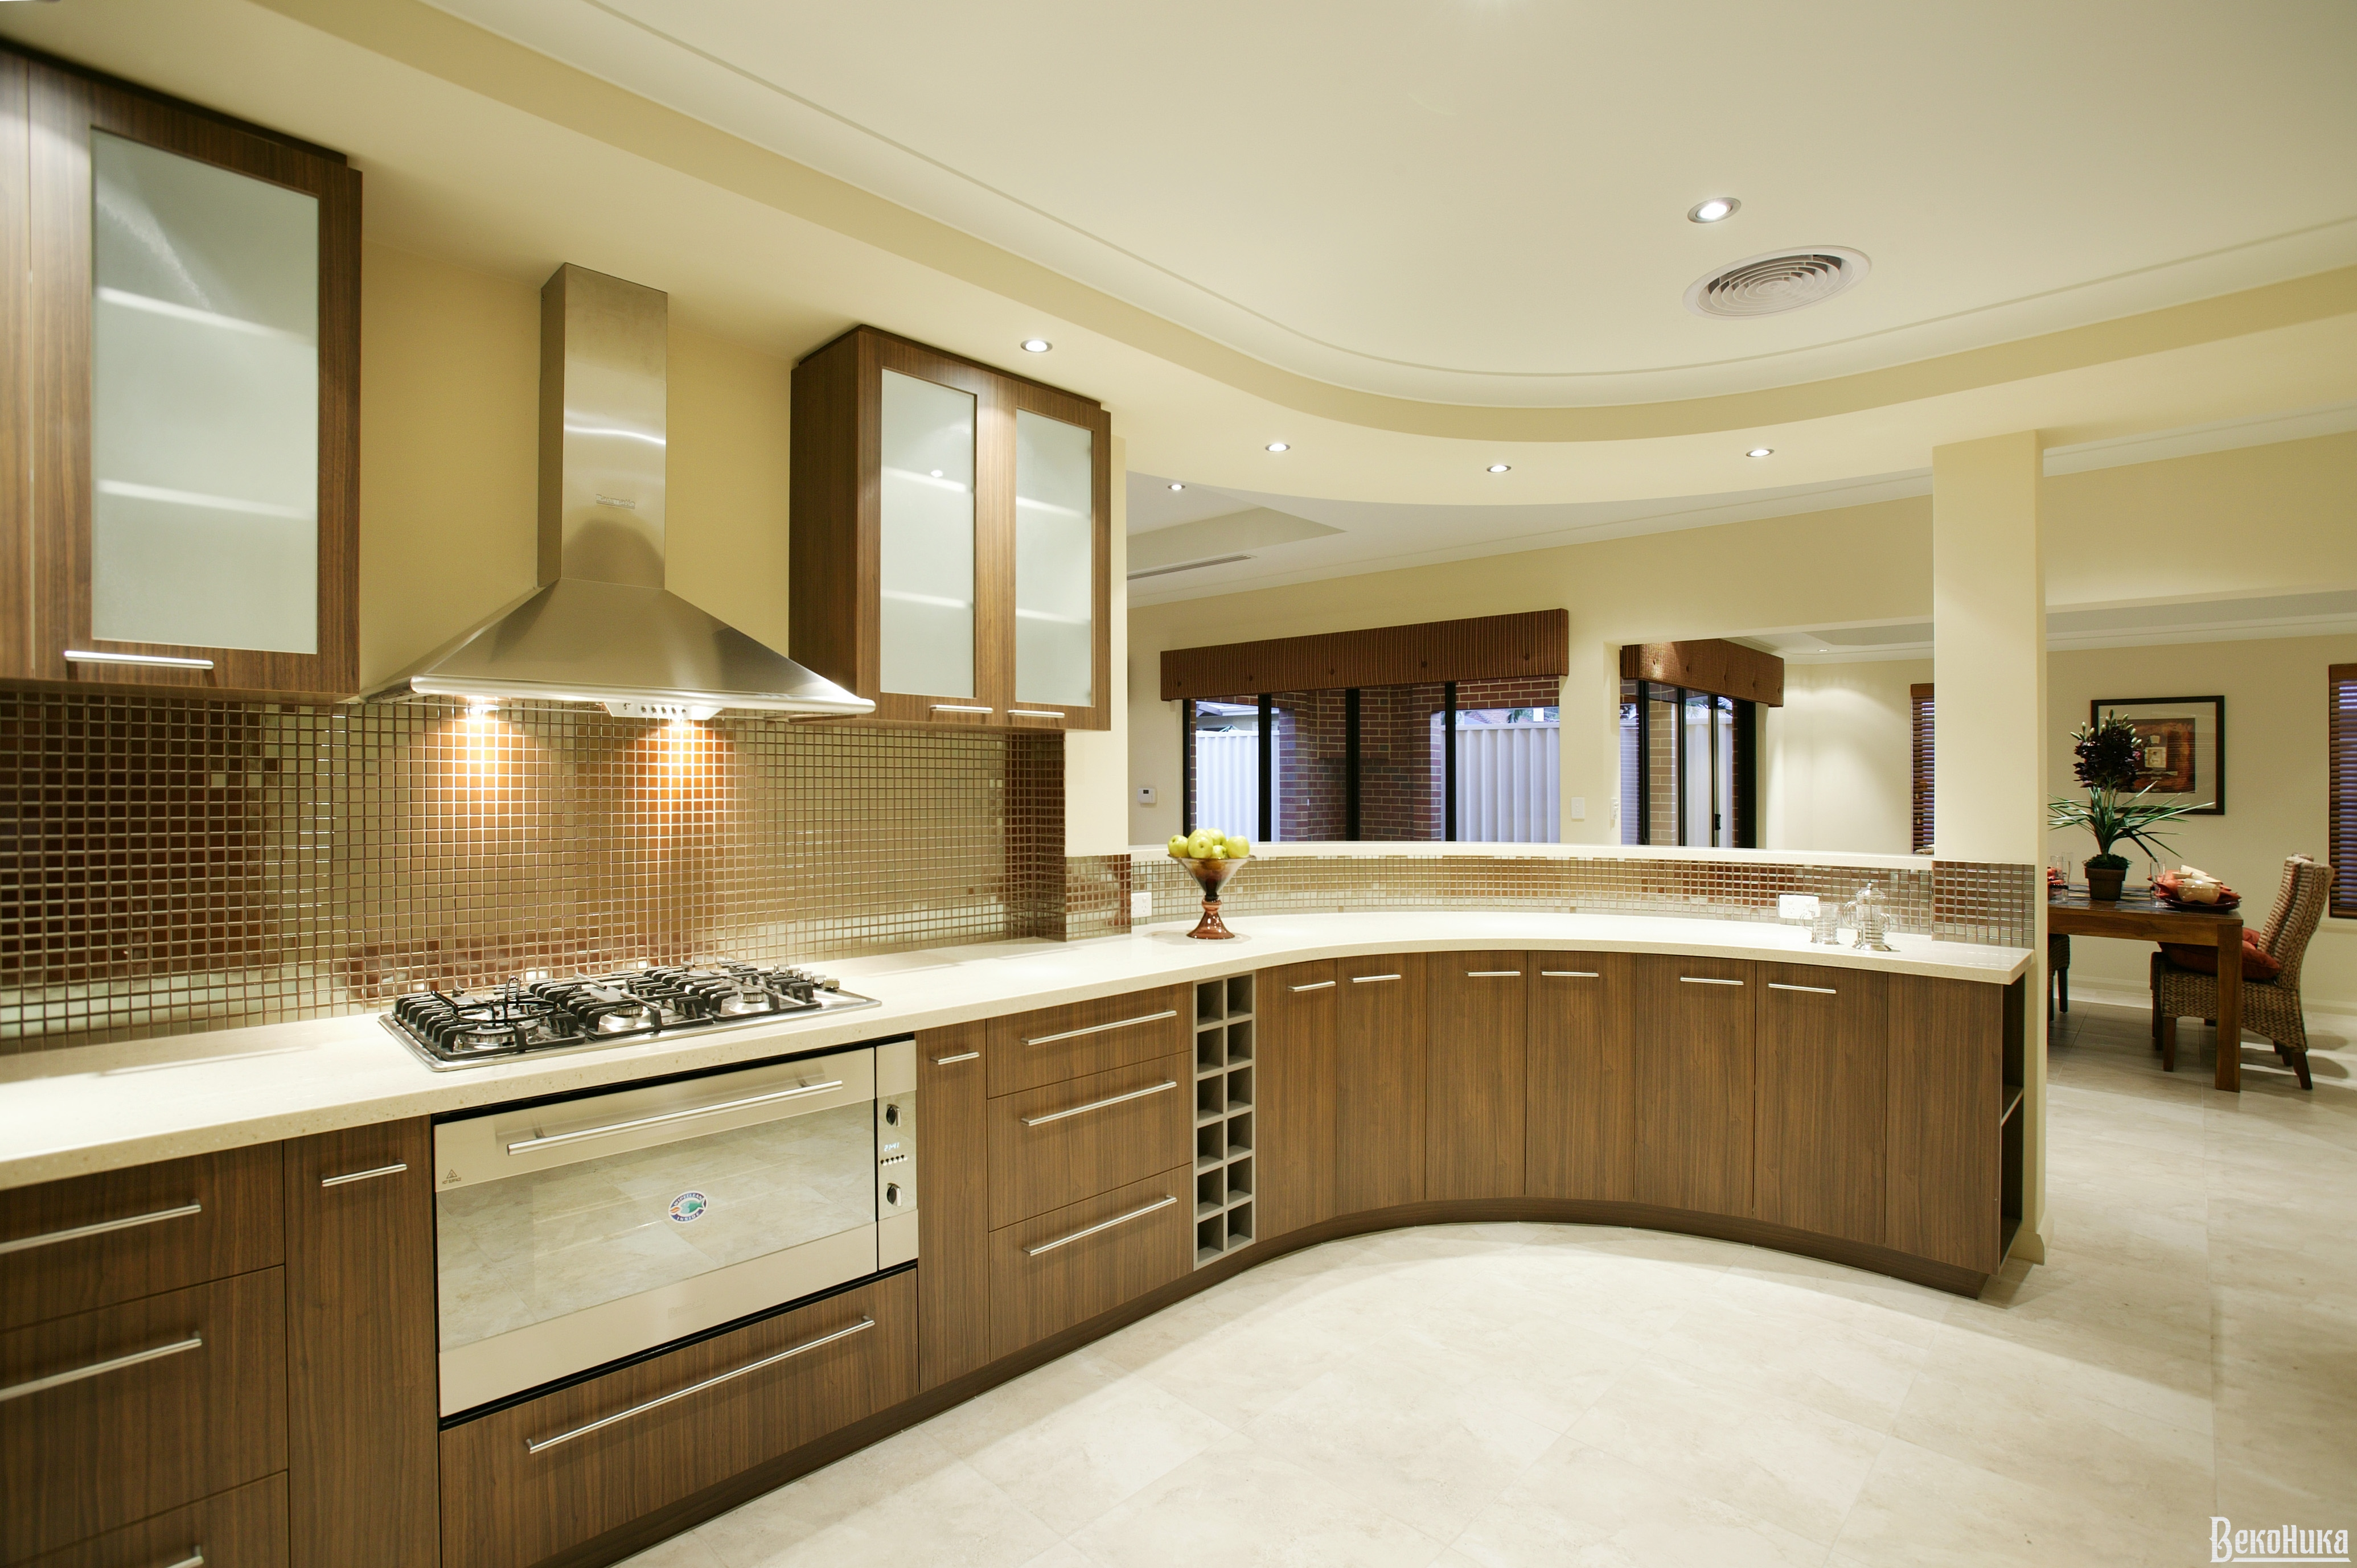 home-kitchen-design-display-view-2